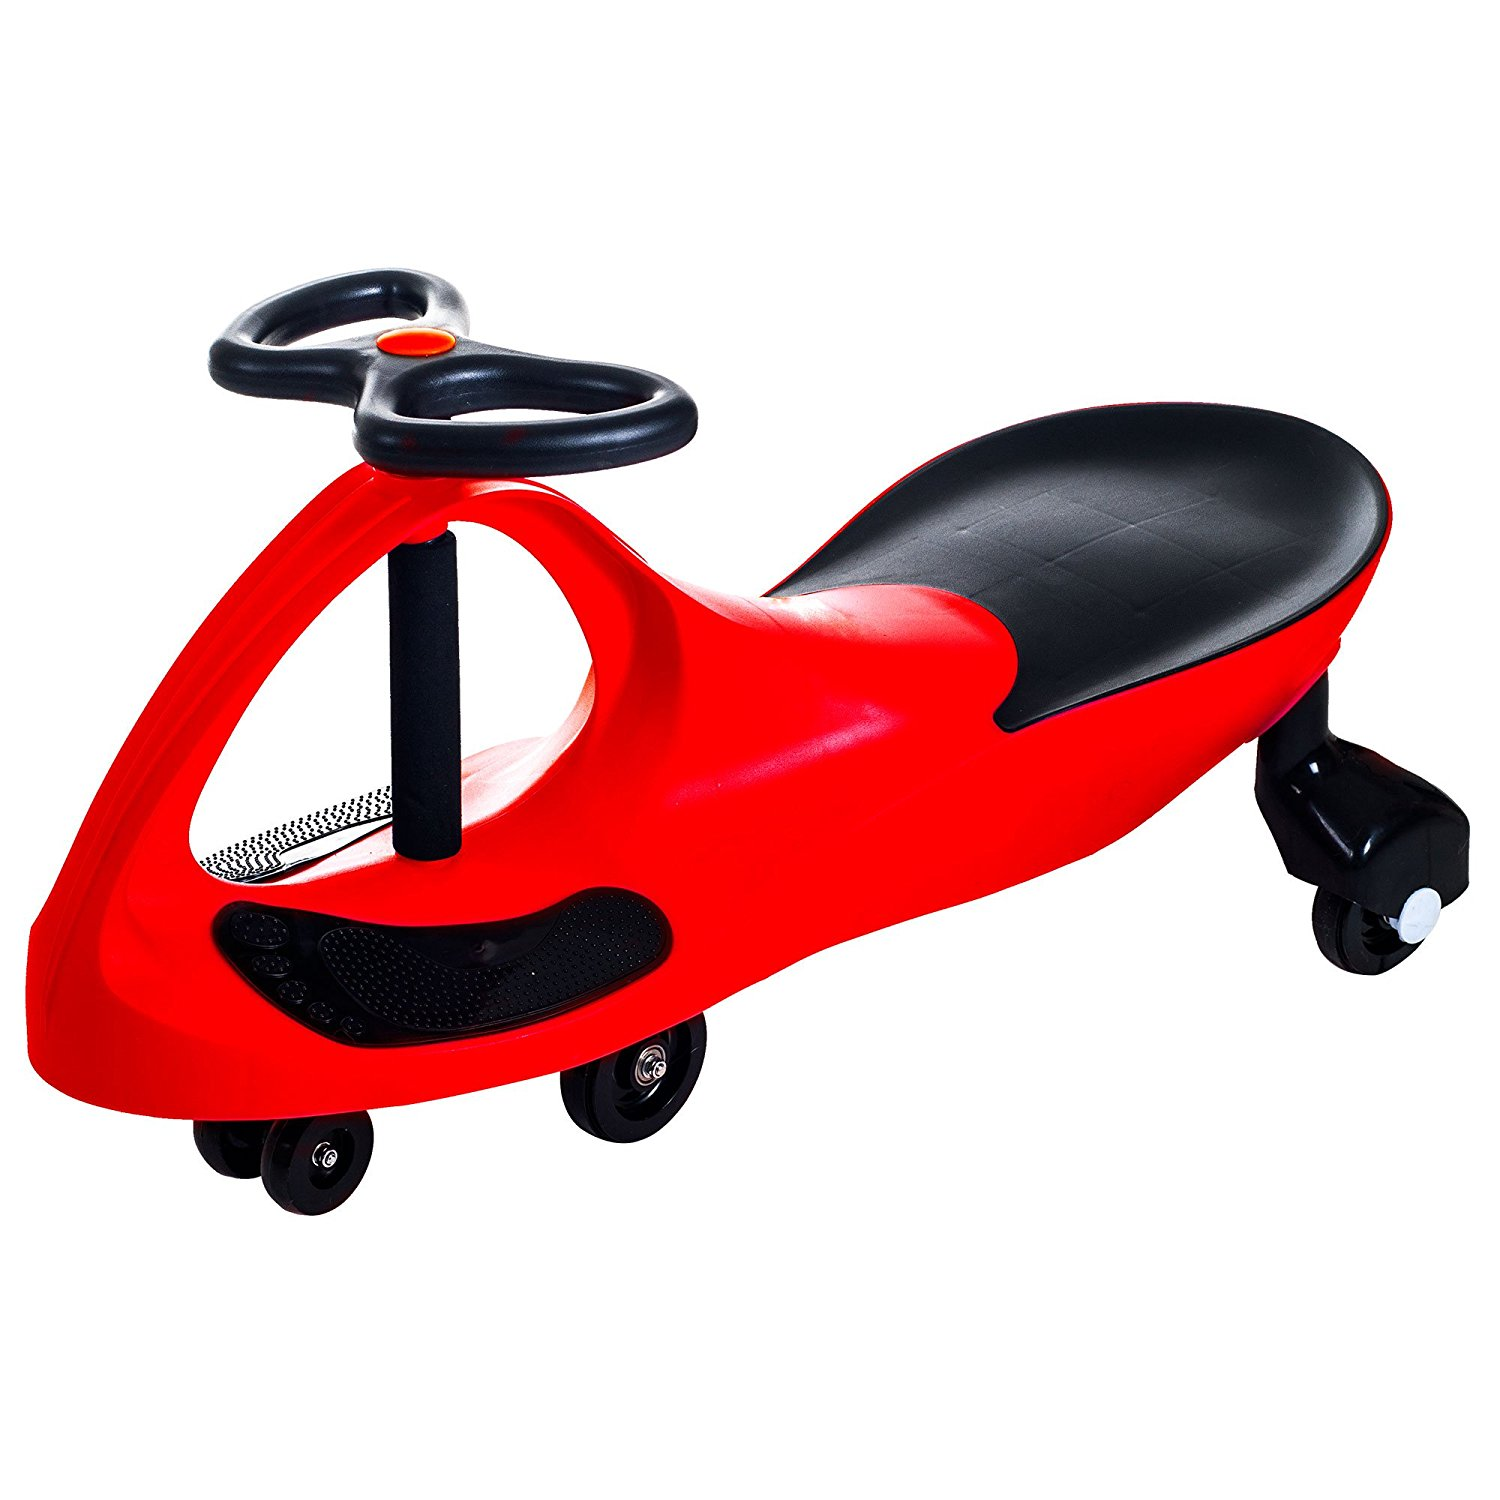 Ride On toy Car Luxury Lil Rider Ride On toy Ride On Wiggle Car by Ride On